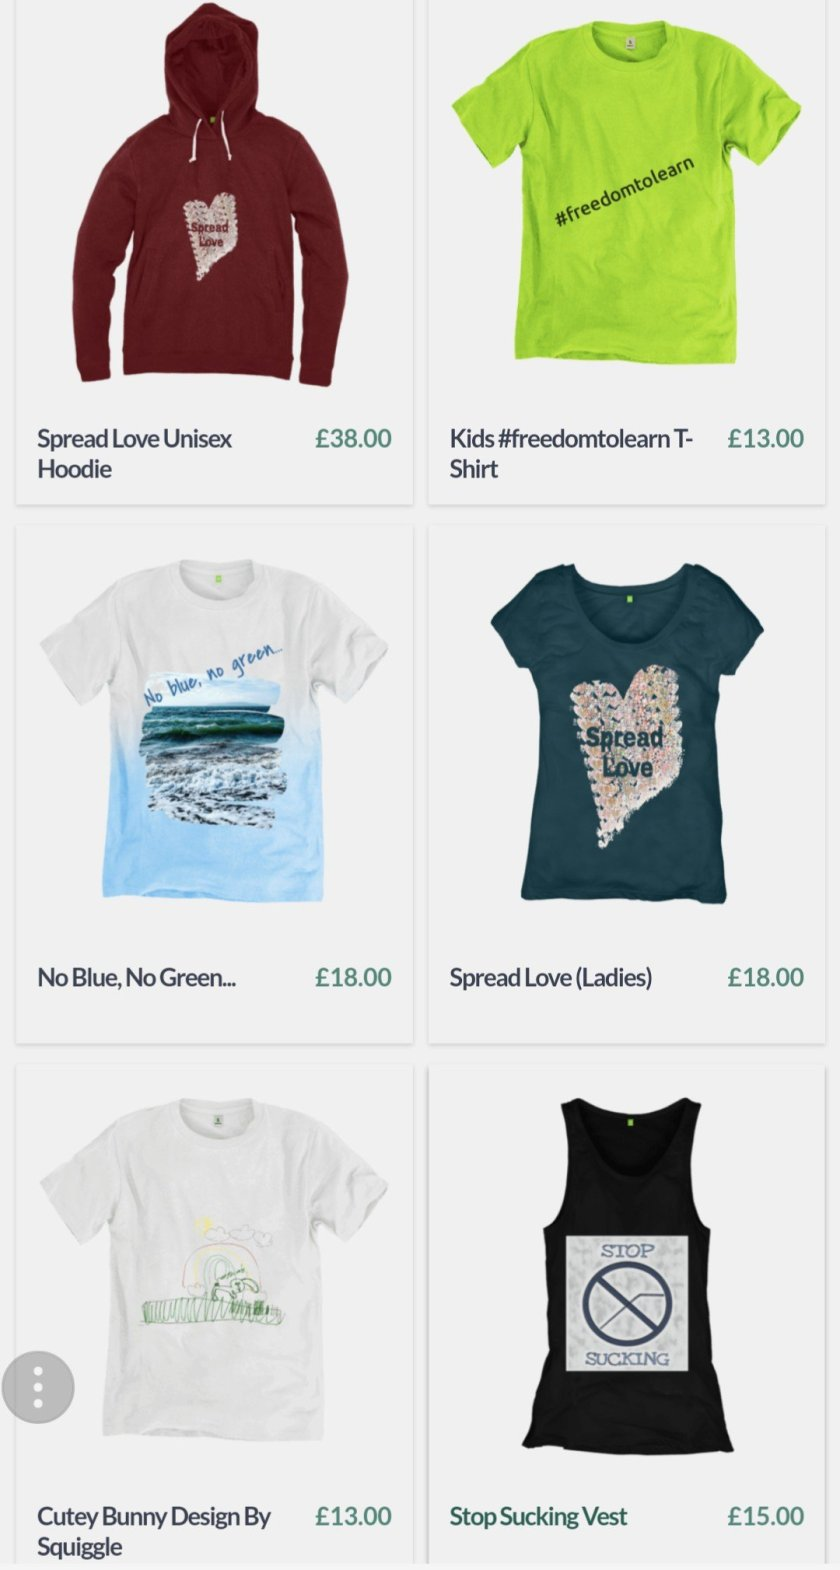 An image showing 6 of the different designs available from the store.